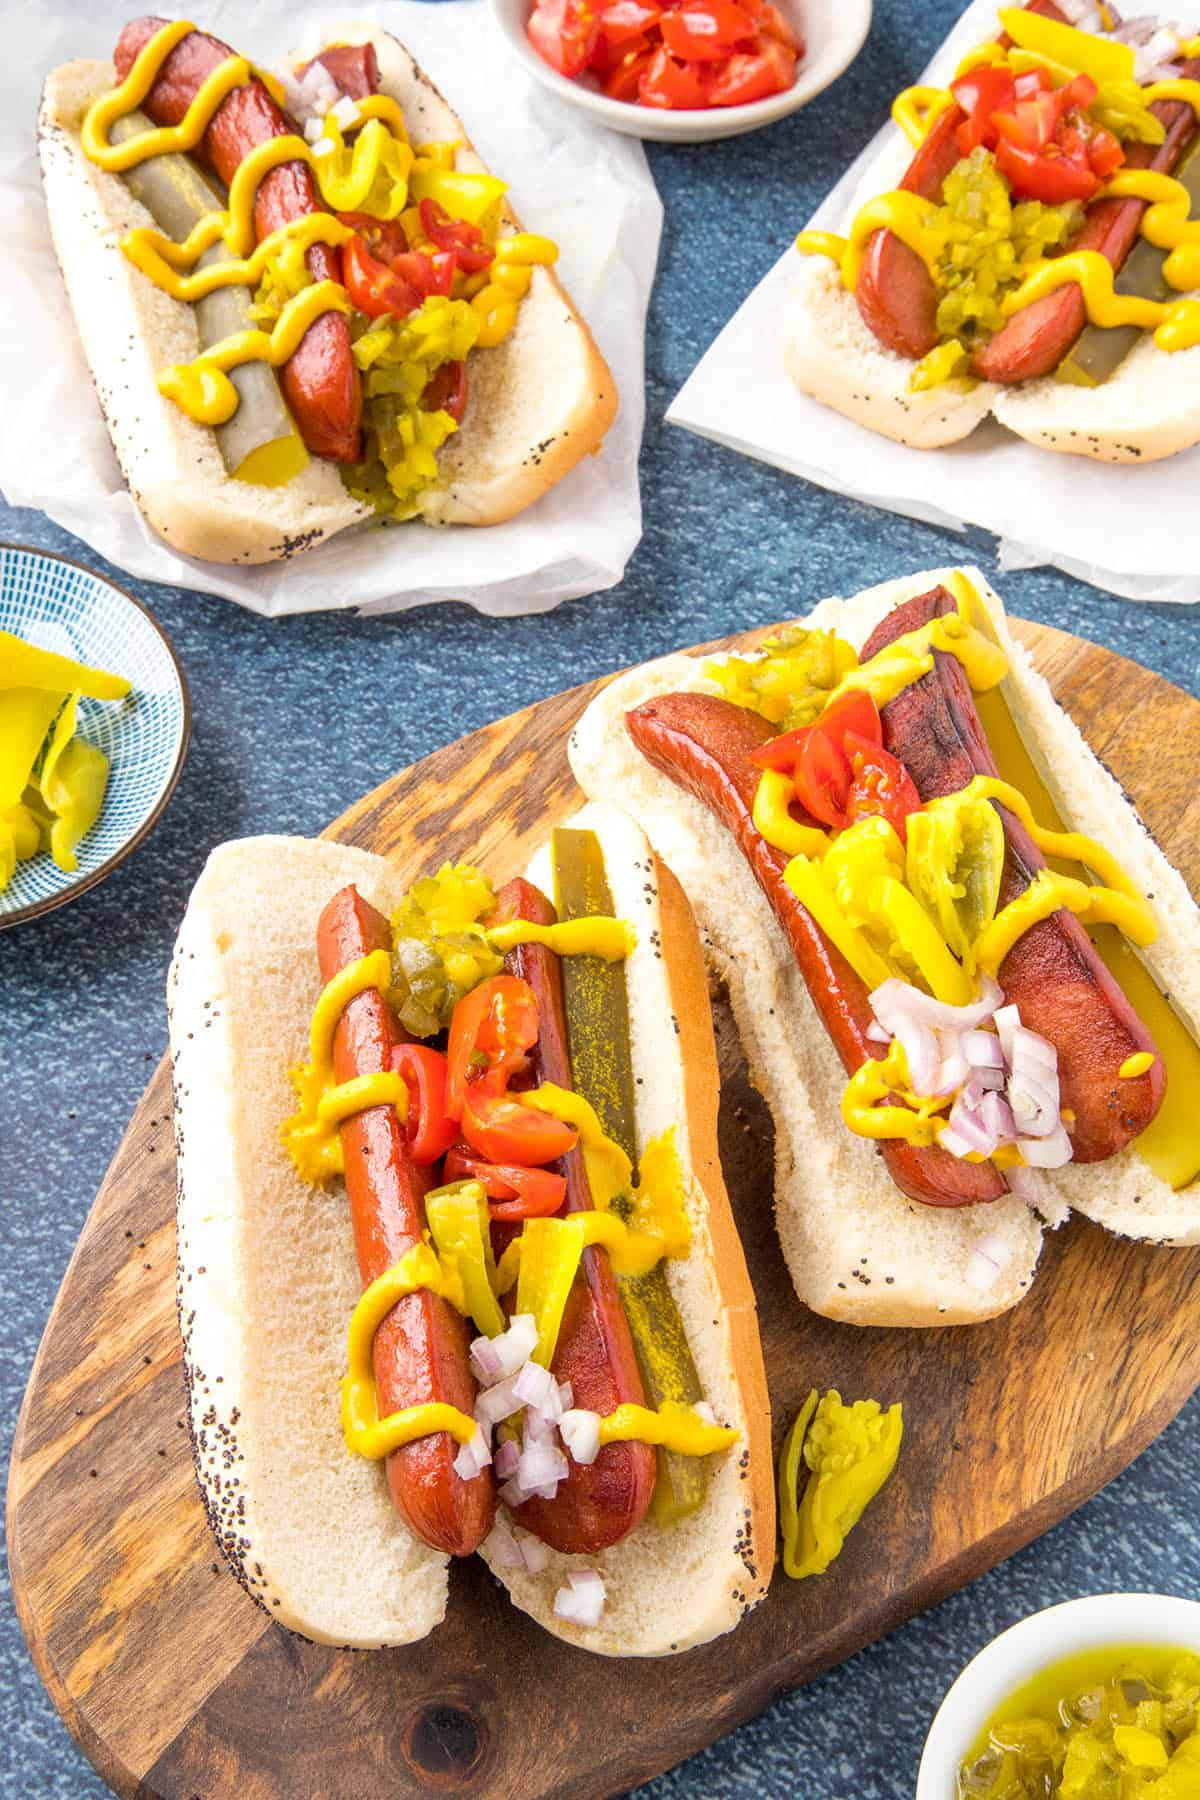 Chicago Style Hot Dogs with loads of mustard